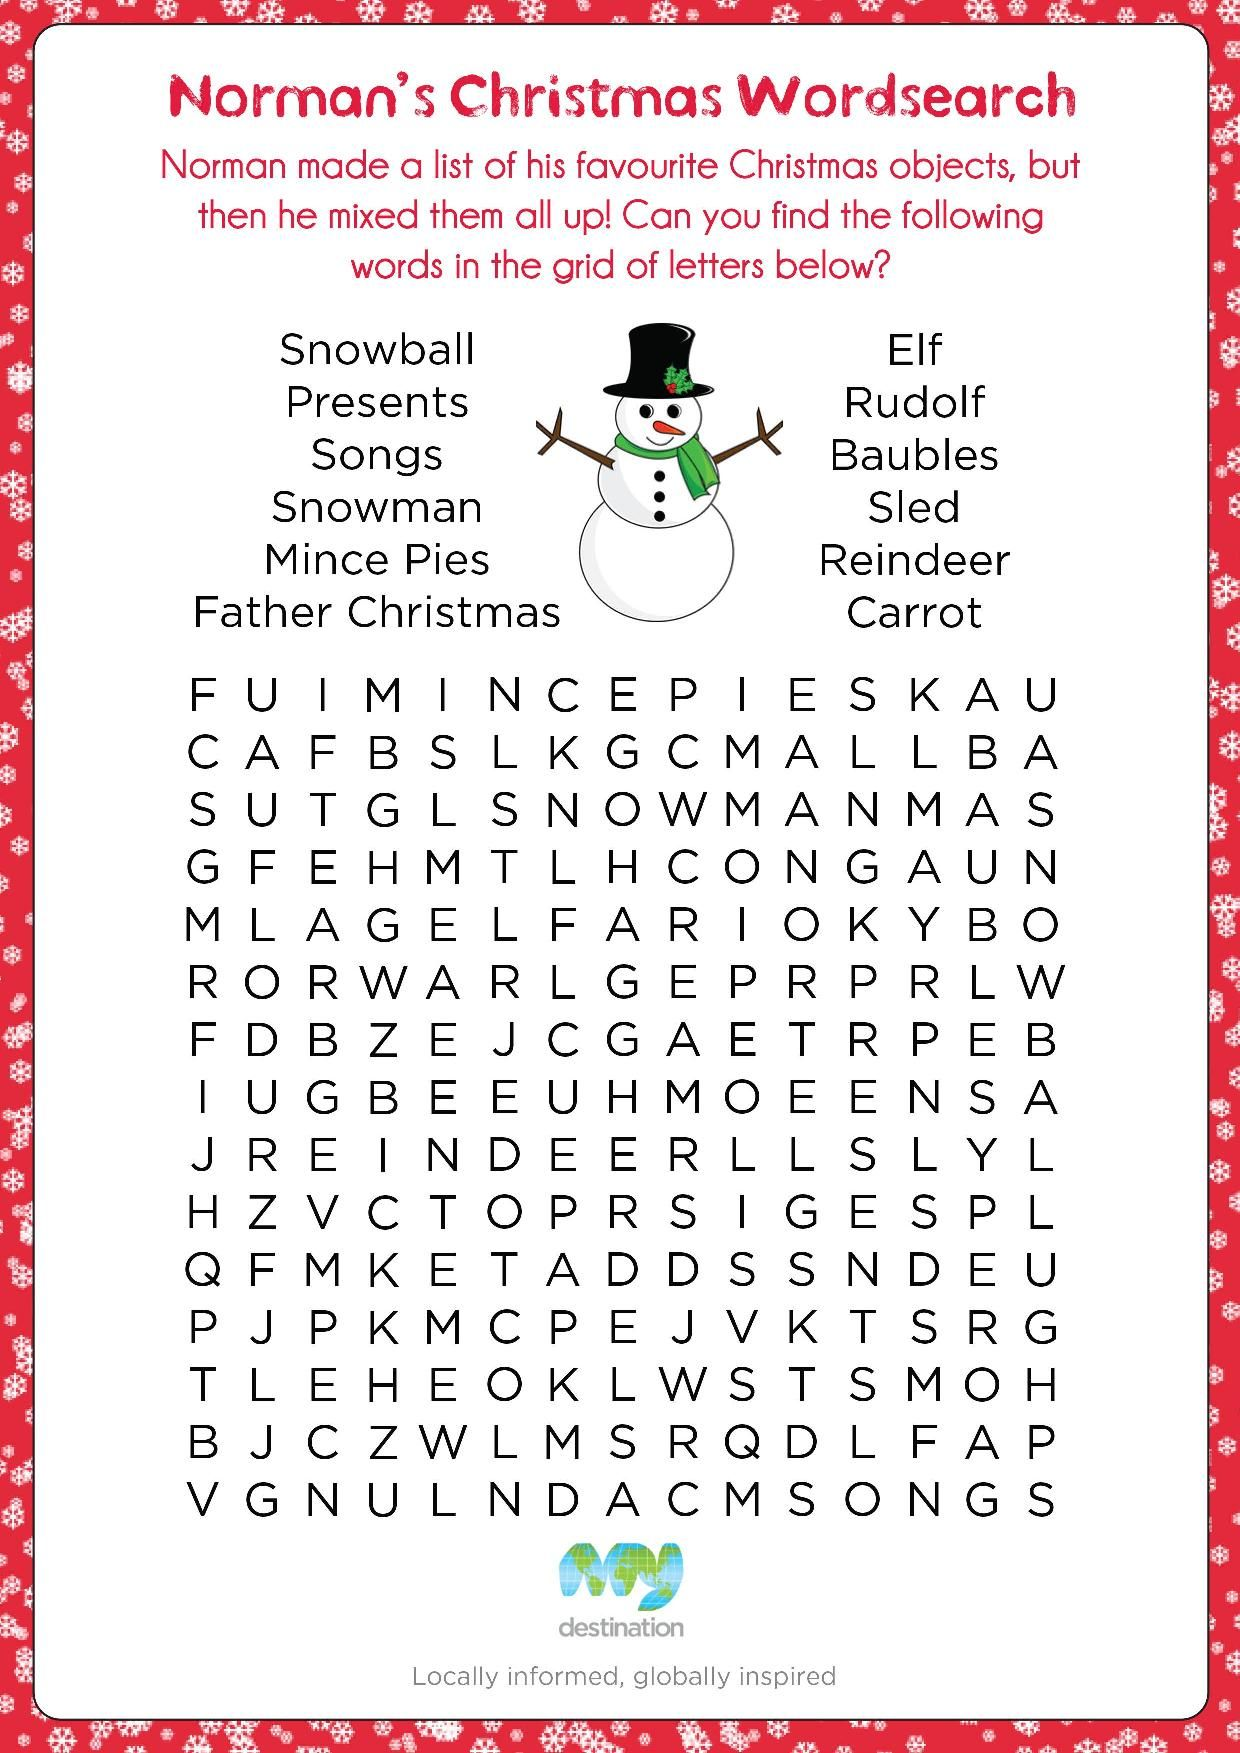 Christmas Wordsearch. Download this puzzle for free at the